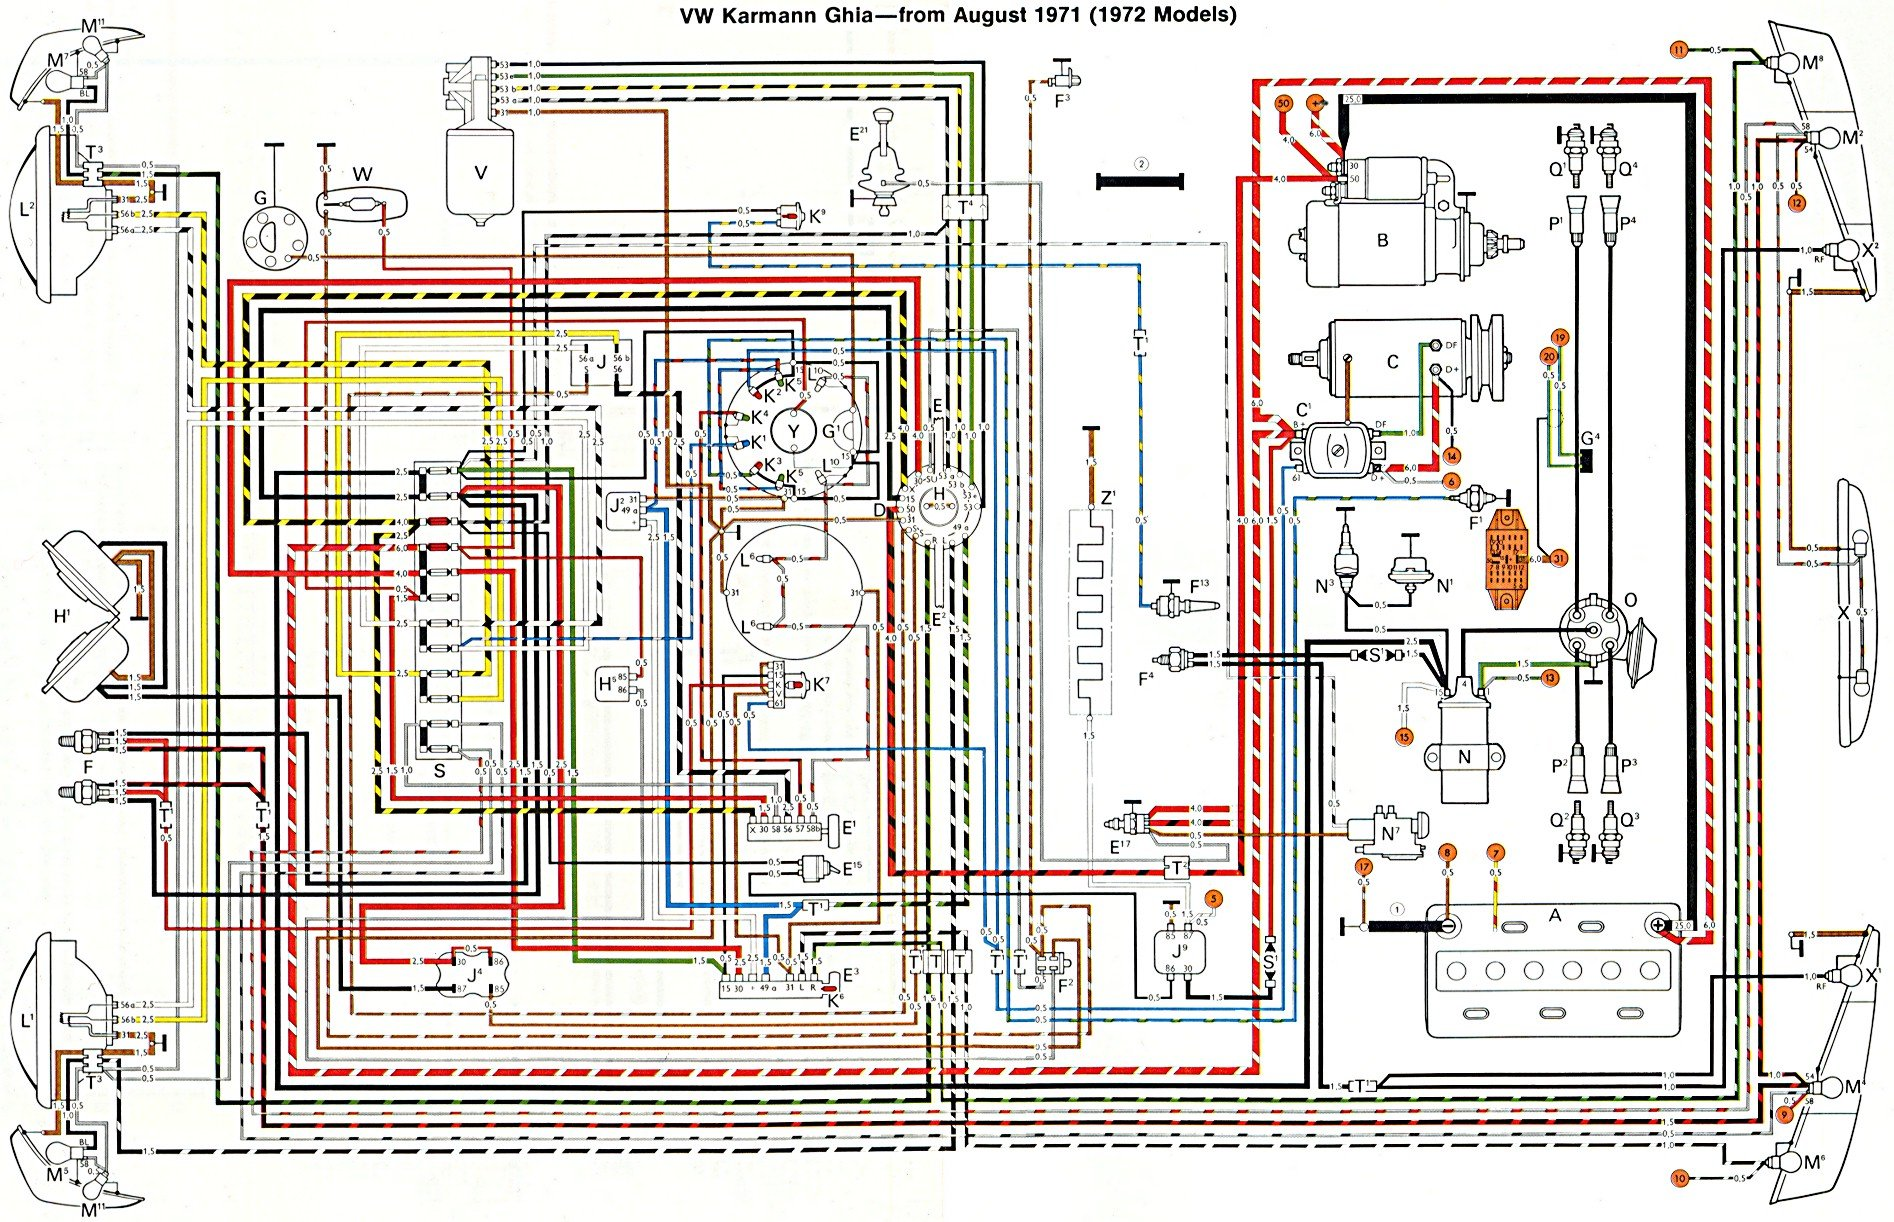 72ghia thesamba com karmann ghia wiring diagrams 914 wiring diagram at readyjetset.co